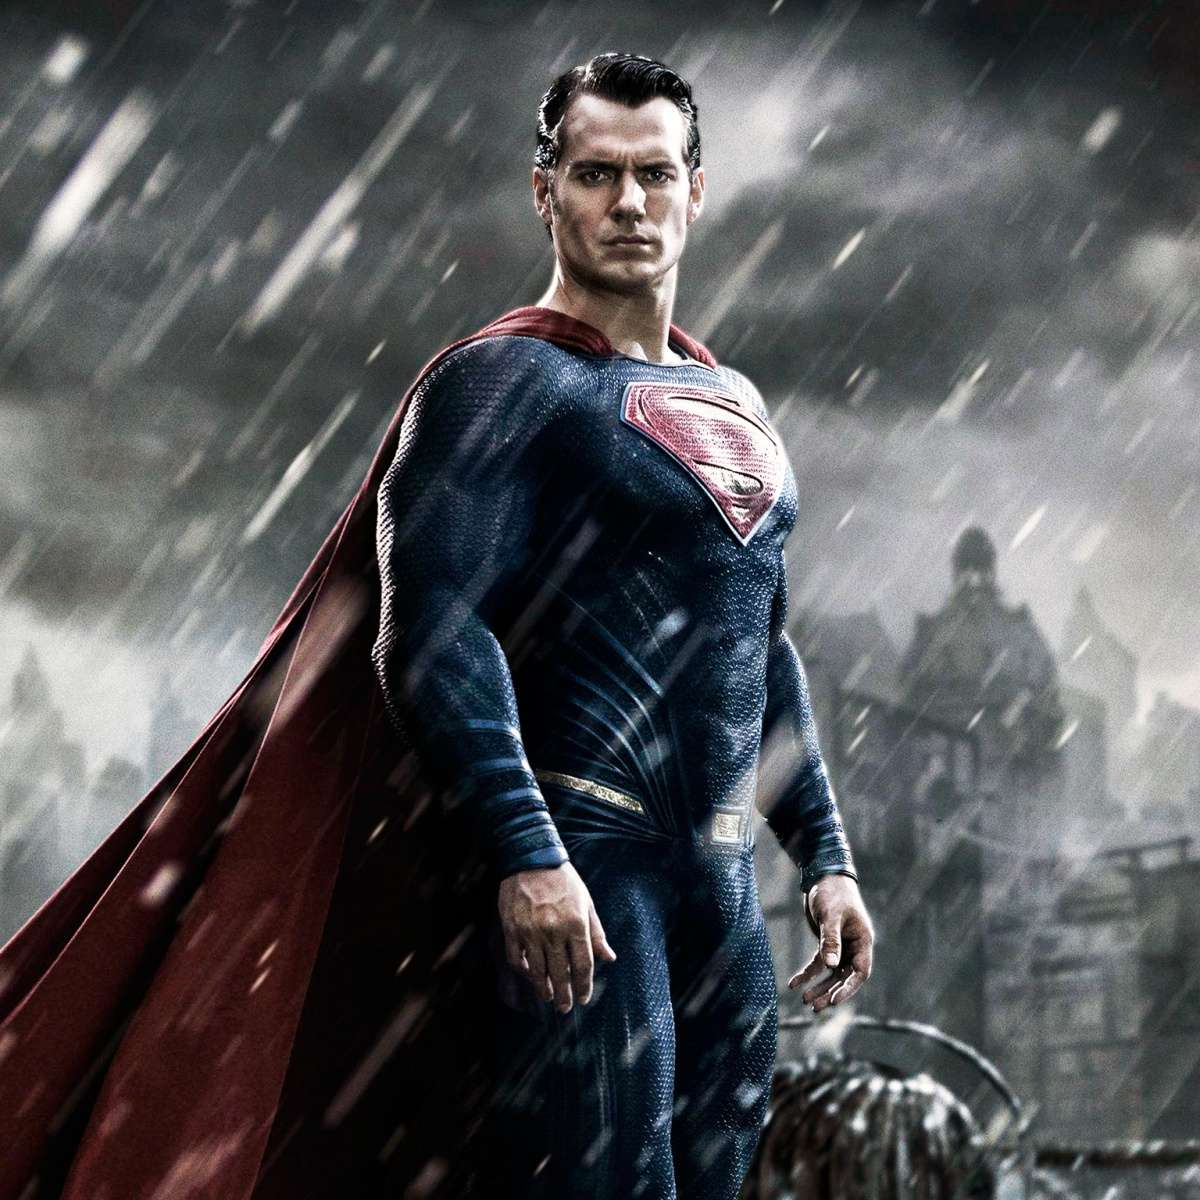 superman_in_batman_v_superman_dawn_of_justice-1600x1200.jpg